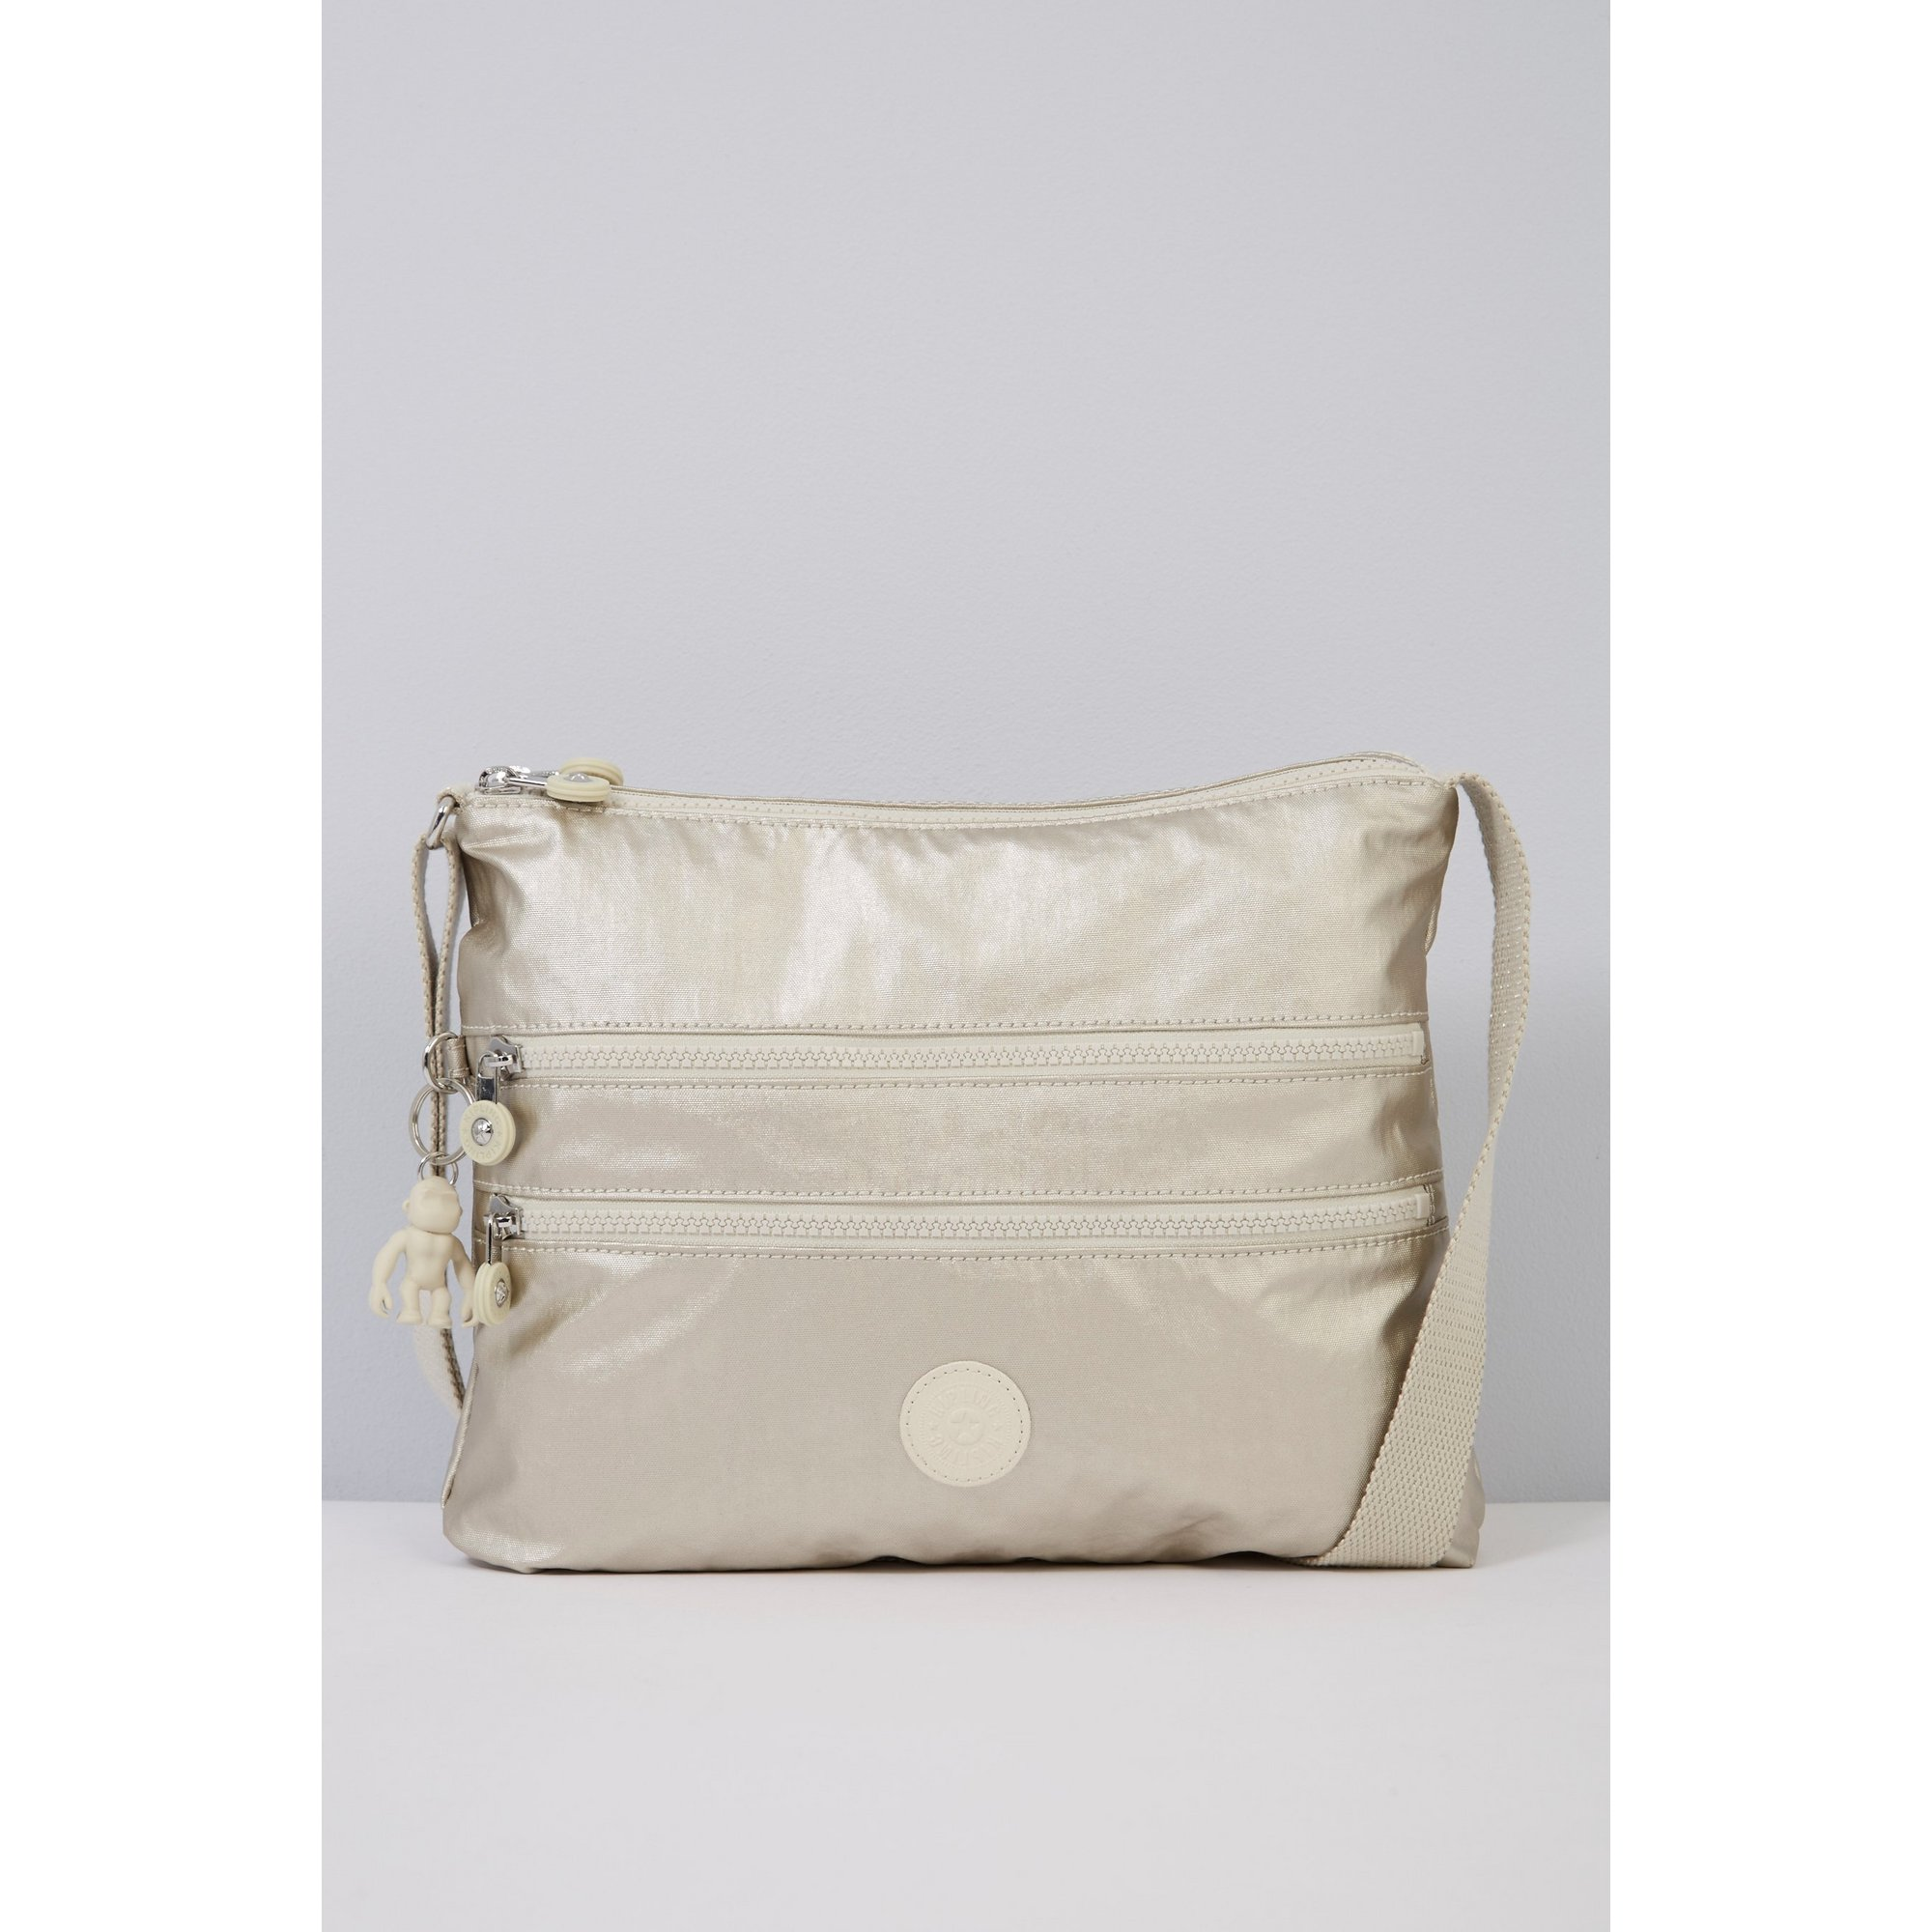 Image of Kipling Alvar Cloud Bag